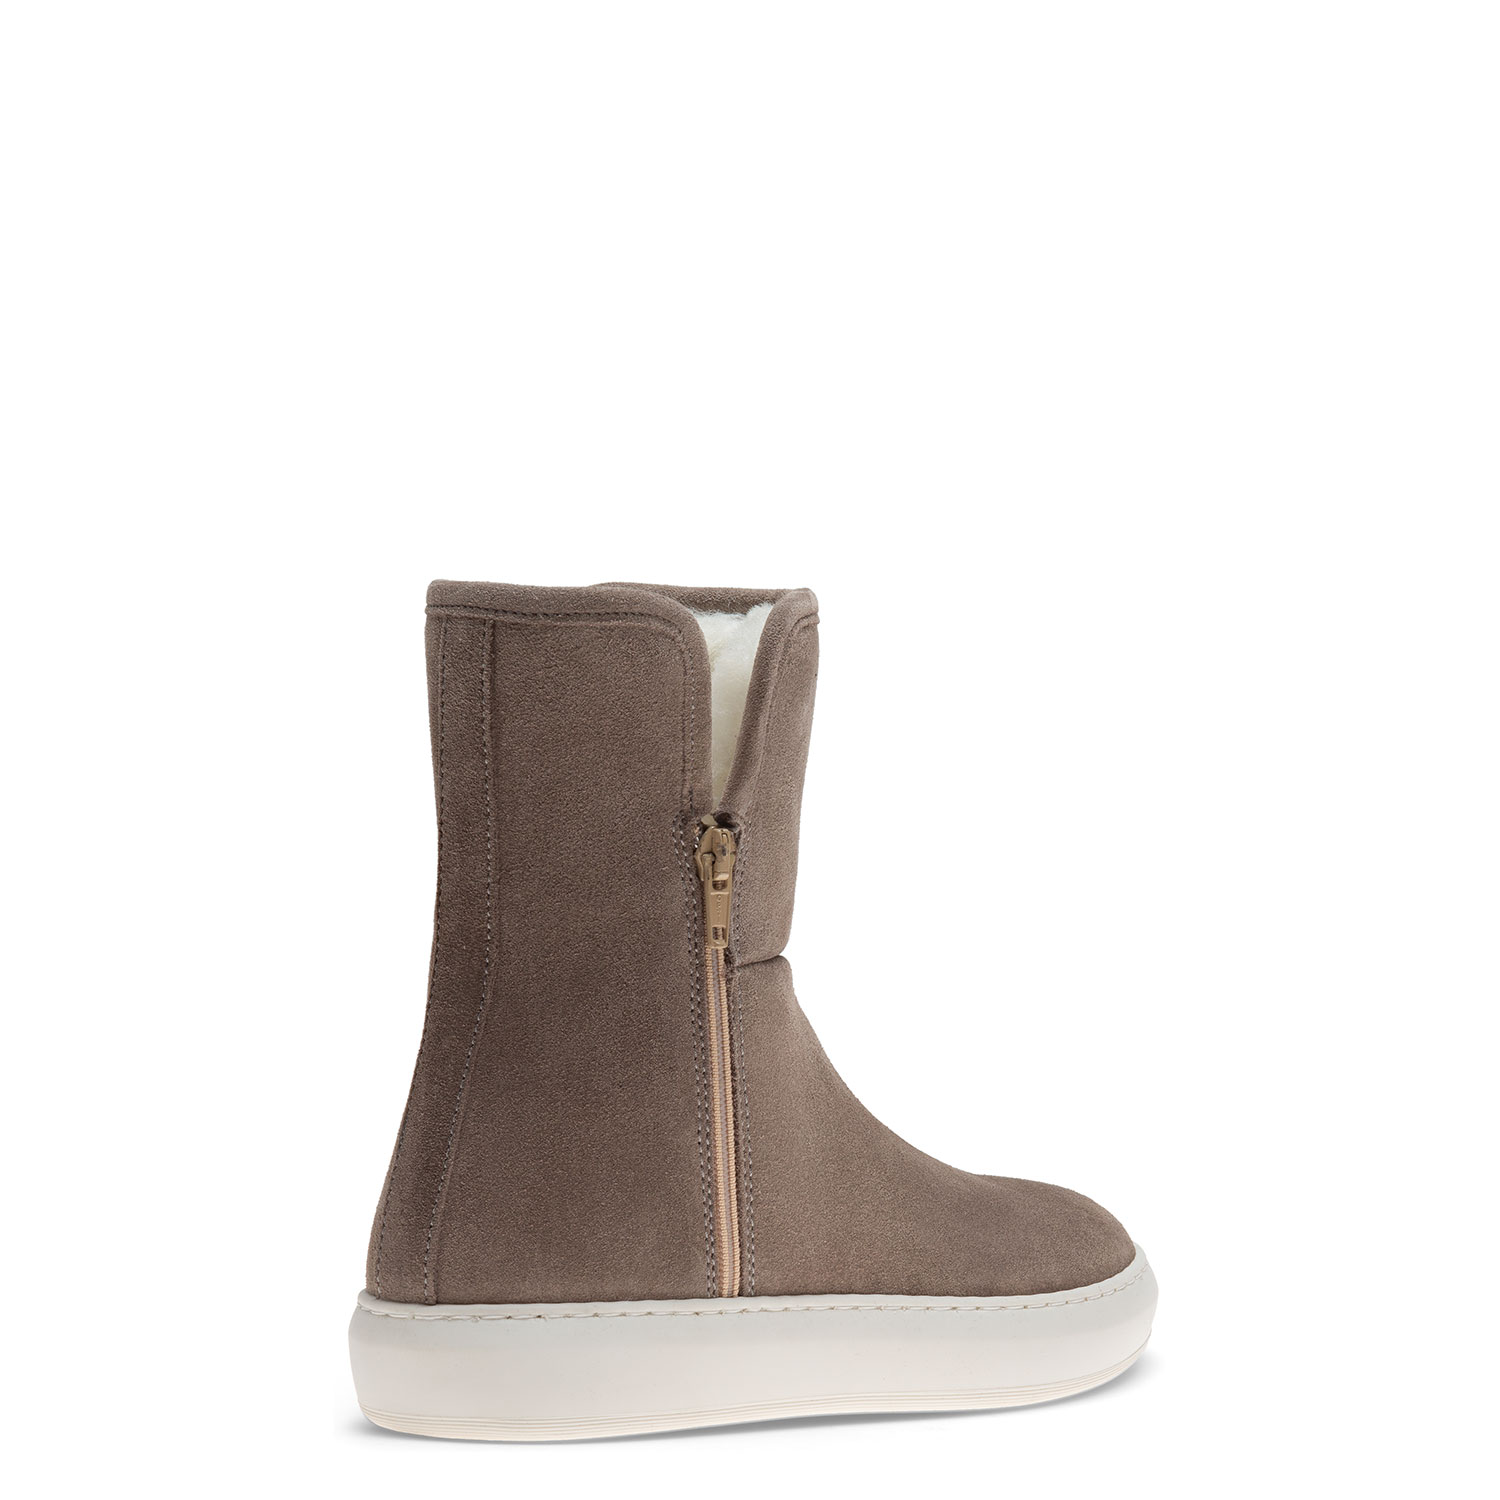 Women's ankle boots PAZOLINI EC-KED1-34